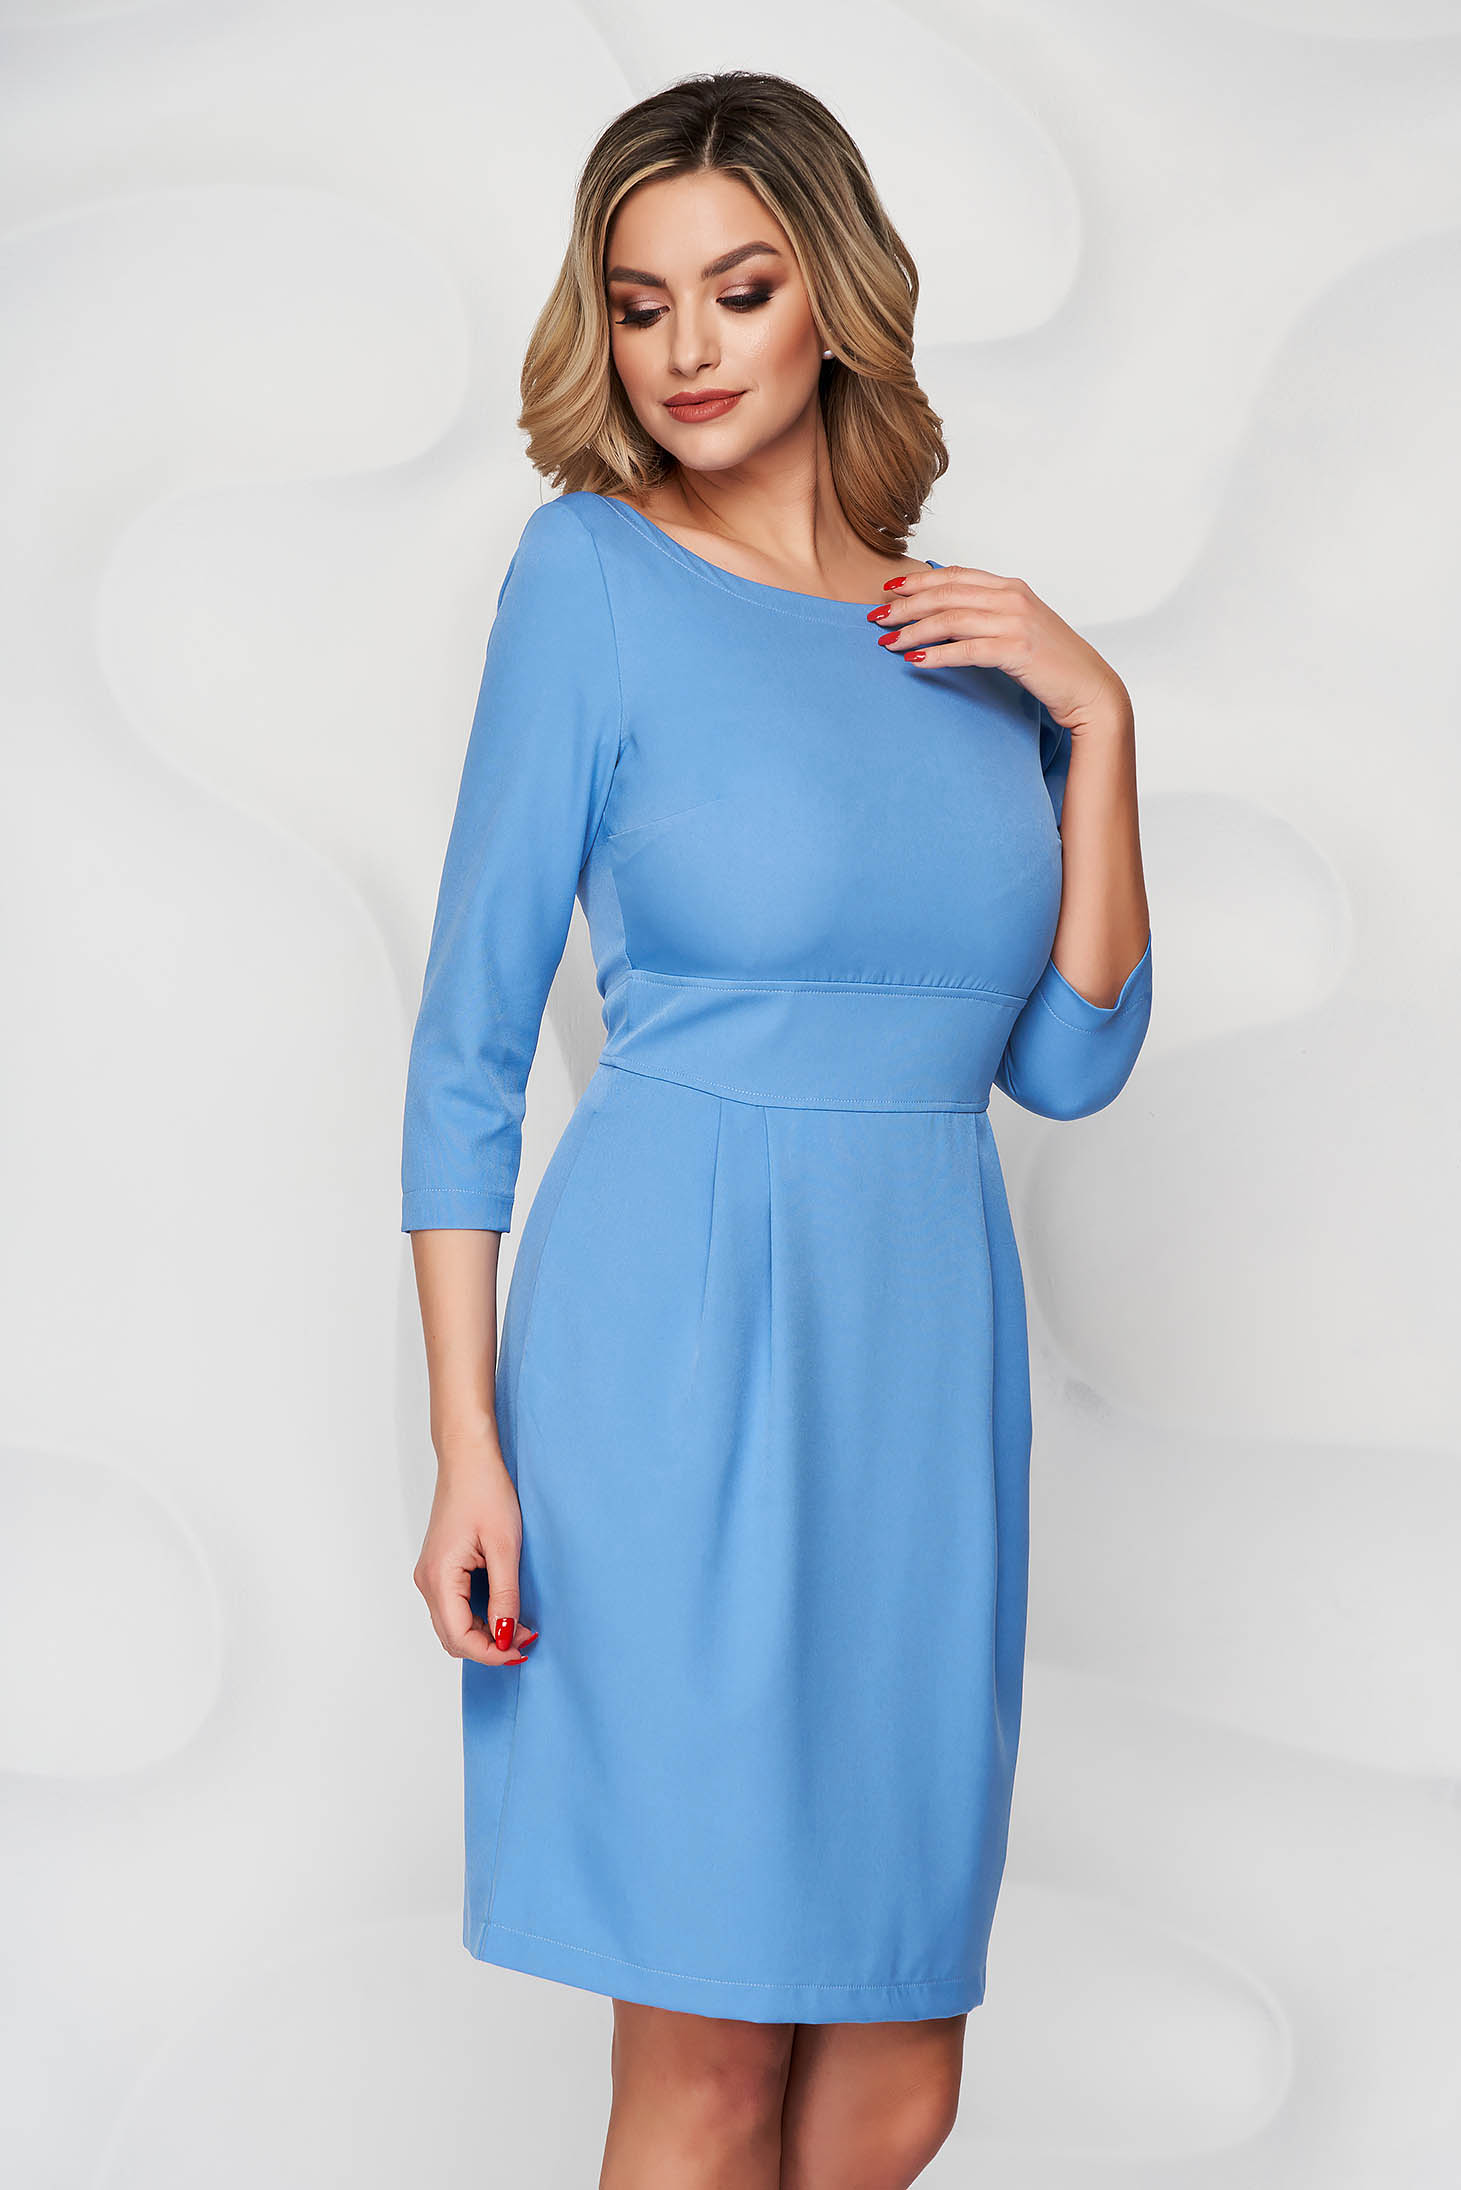 StarShinerS blue office dress slightly elastic fabric with pockets